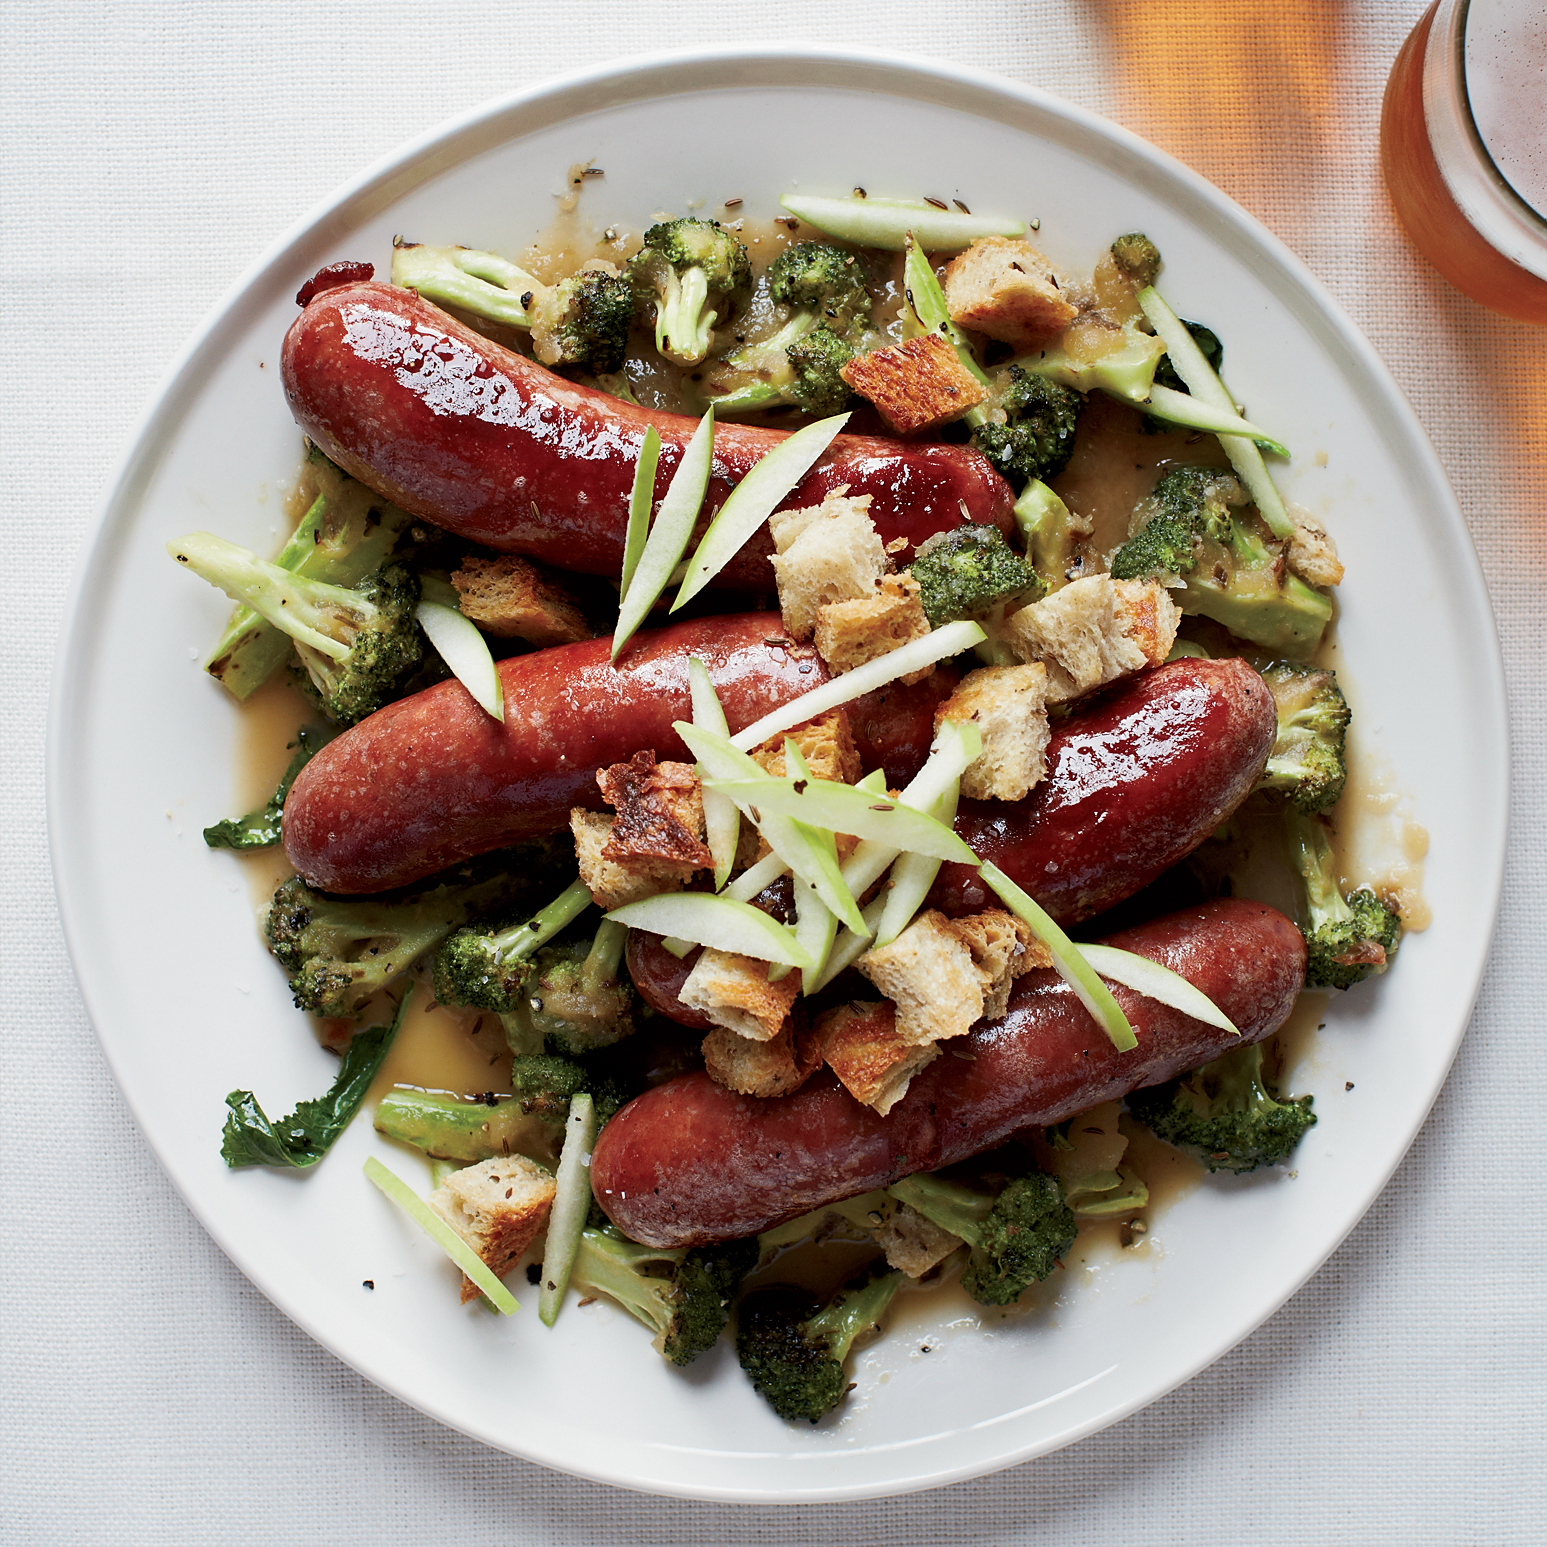 Smoked Pork Sausage with Hard-Cider Sauce is an Alternative to Thanksgiving Turkey